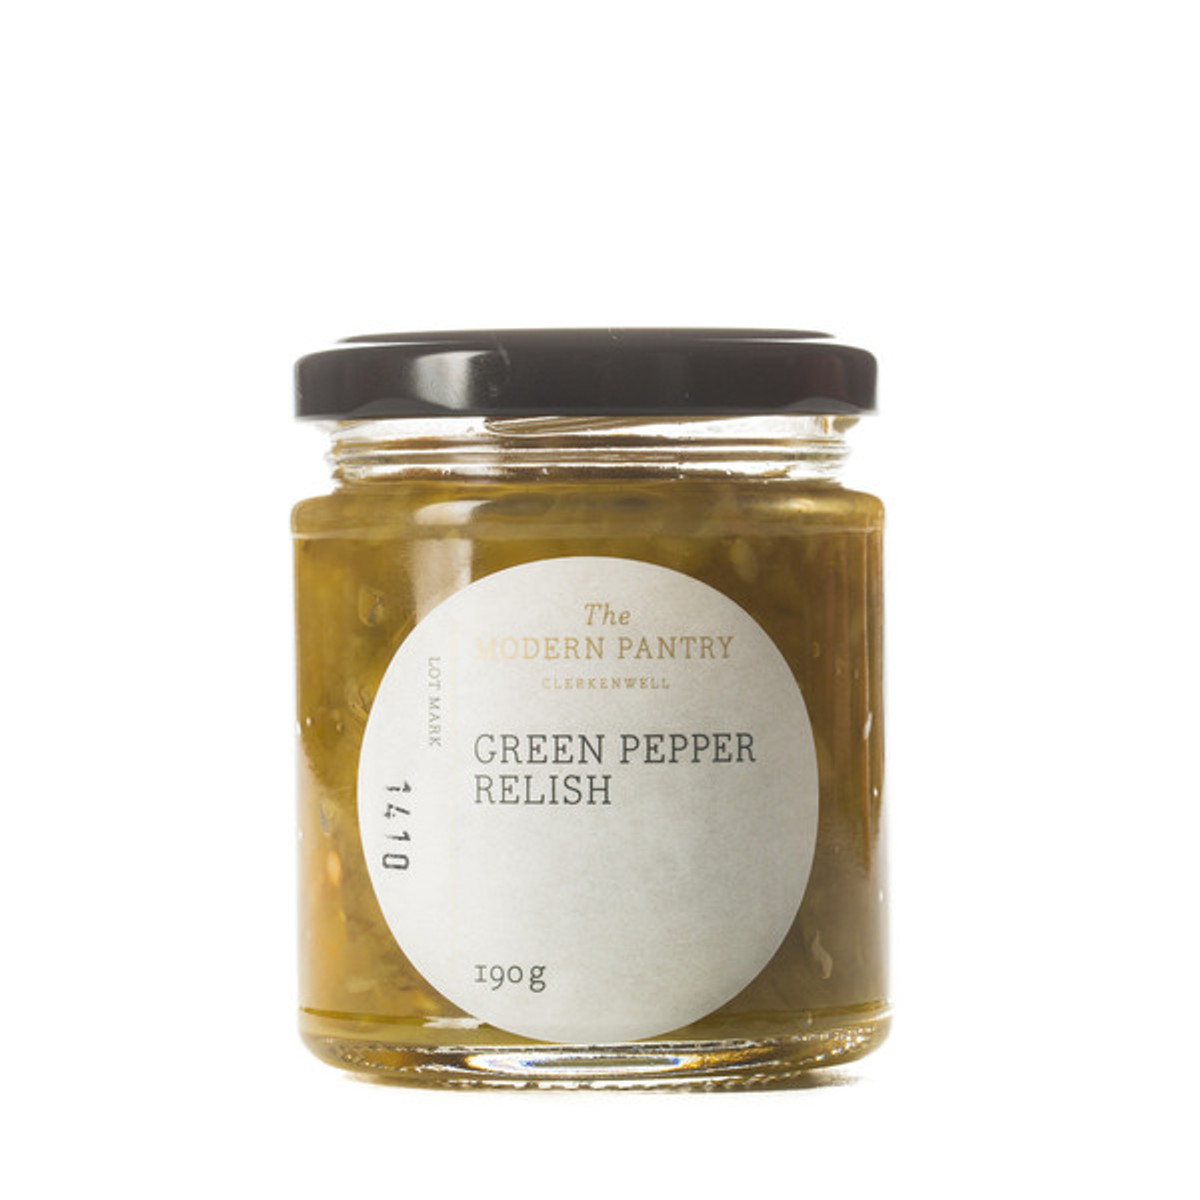 Green Pepper Relish